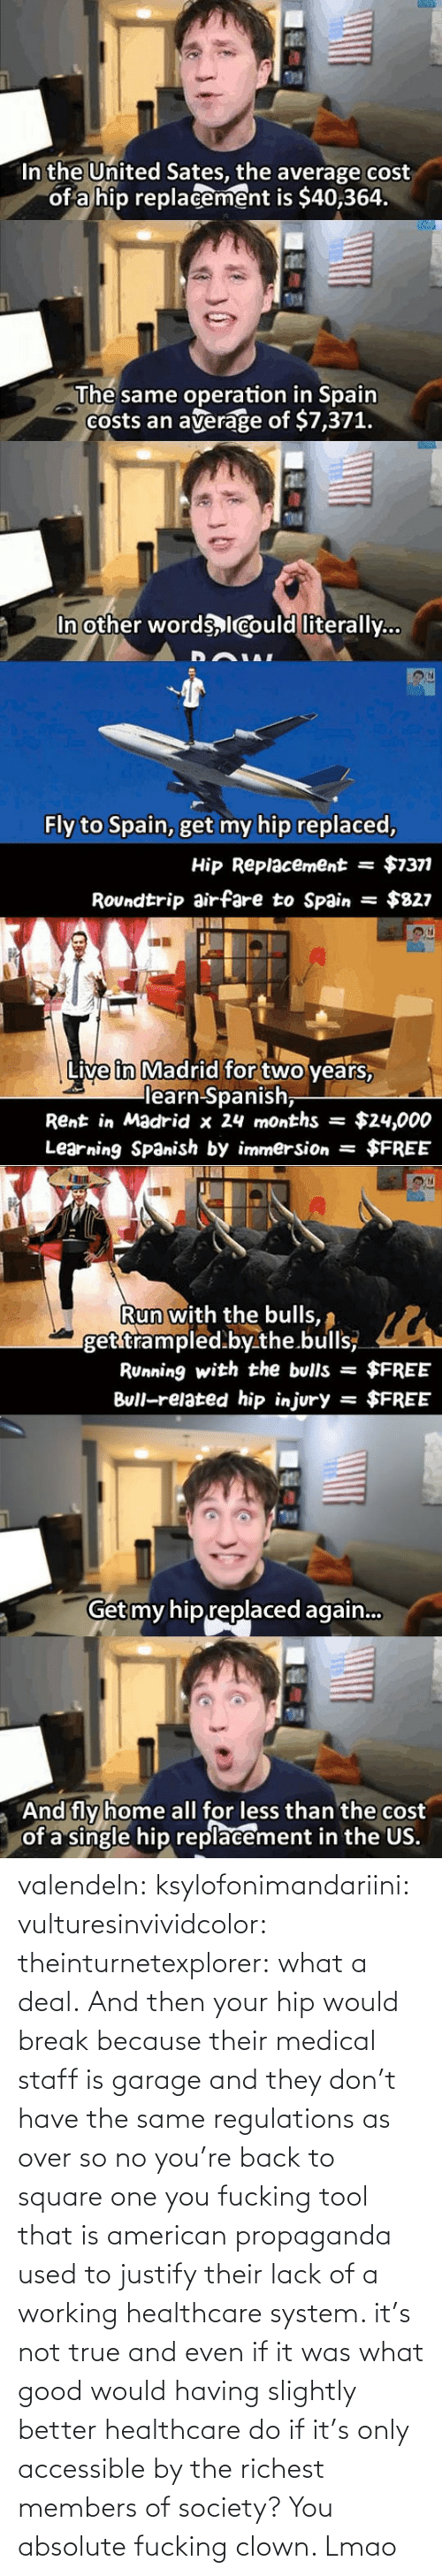 Hip: valendeln:  ksylofonimandariini:  vulturesinvividcolor:   theinturnetexplorer:  what a deal.   And then your hip would break because their medical staff is garage and they don't have the same regulations as over so no you're back to square one you fucking tool    that is american propaganda used to justify their lack of a working healthcare system. it's not true and even if it was what good would having slightly better healthcare do if it's only accessible by the richest members of society?      You absolute fucking clown. Lmao